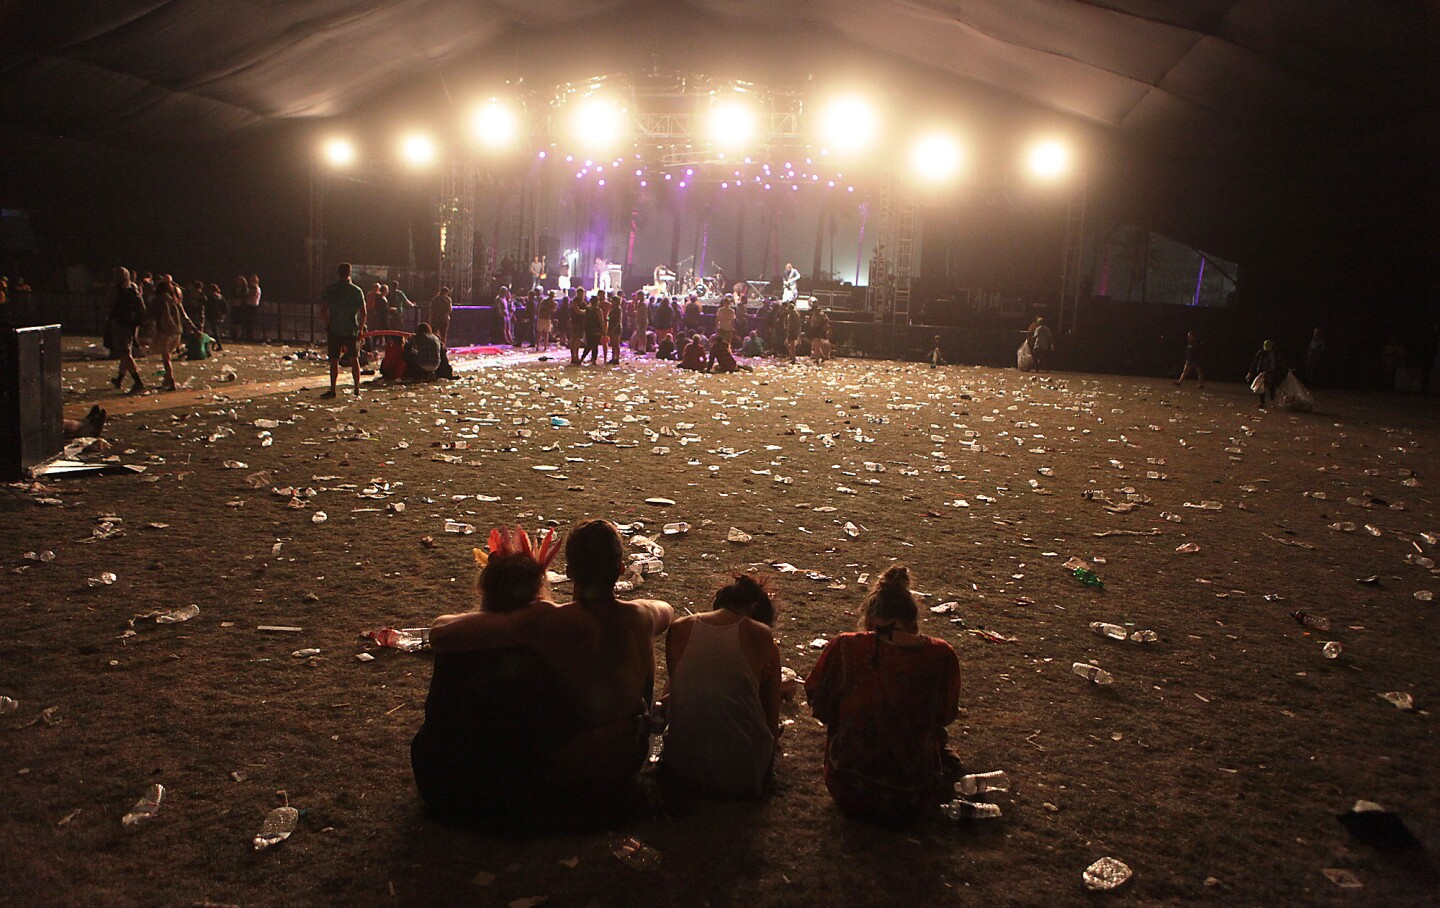 Fans sit on a trash-strewn lawn in front of the Gobi stage between shows on the second day of the Coachella Valley Music and Arts Festival in Indio.